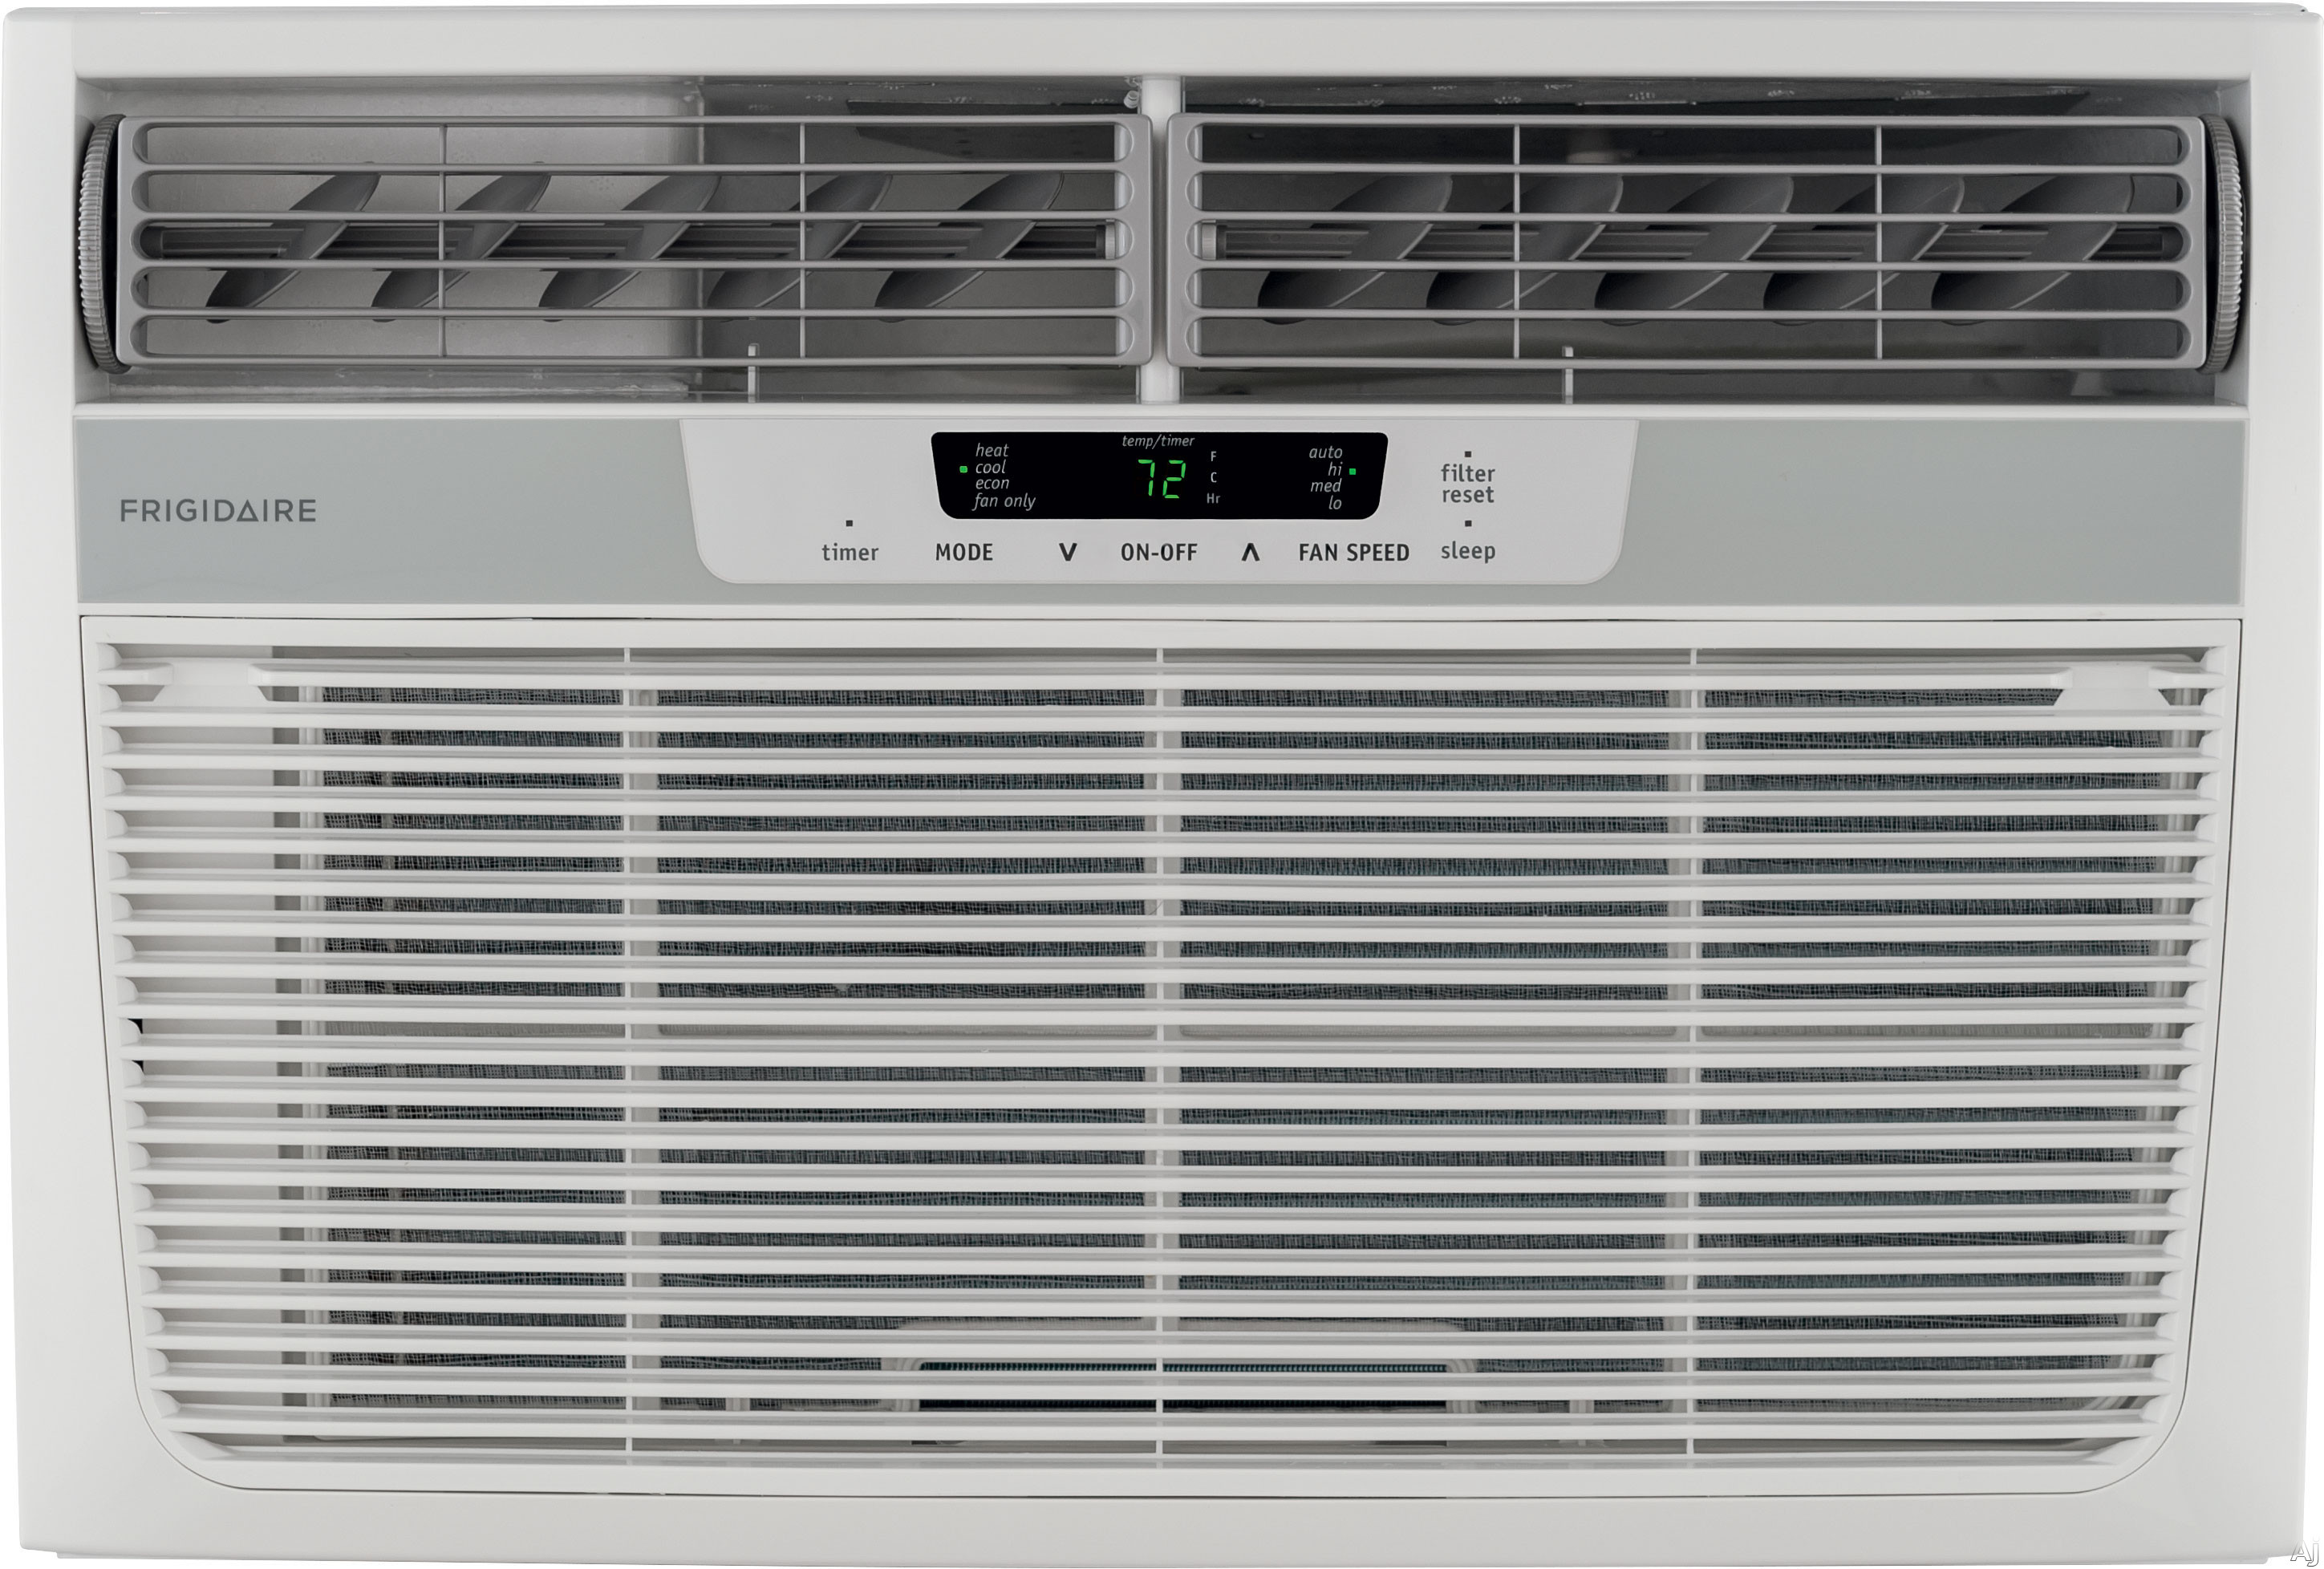 #515759 Frigidaire FRA08PZU1 8 000 BTU Room Air Conditioner With  Highest Rated 14046 Single Room Heater Air Conditioner img with 2897x1956 px on helpvideos.info - Air Conditioners, Air Coolers and more